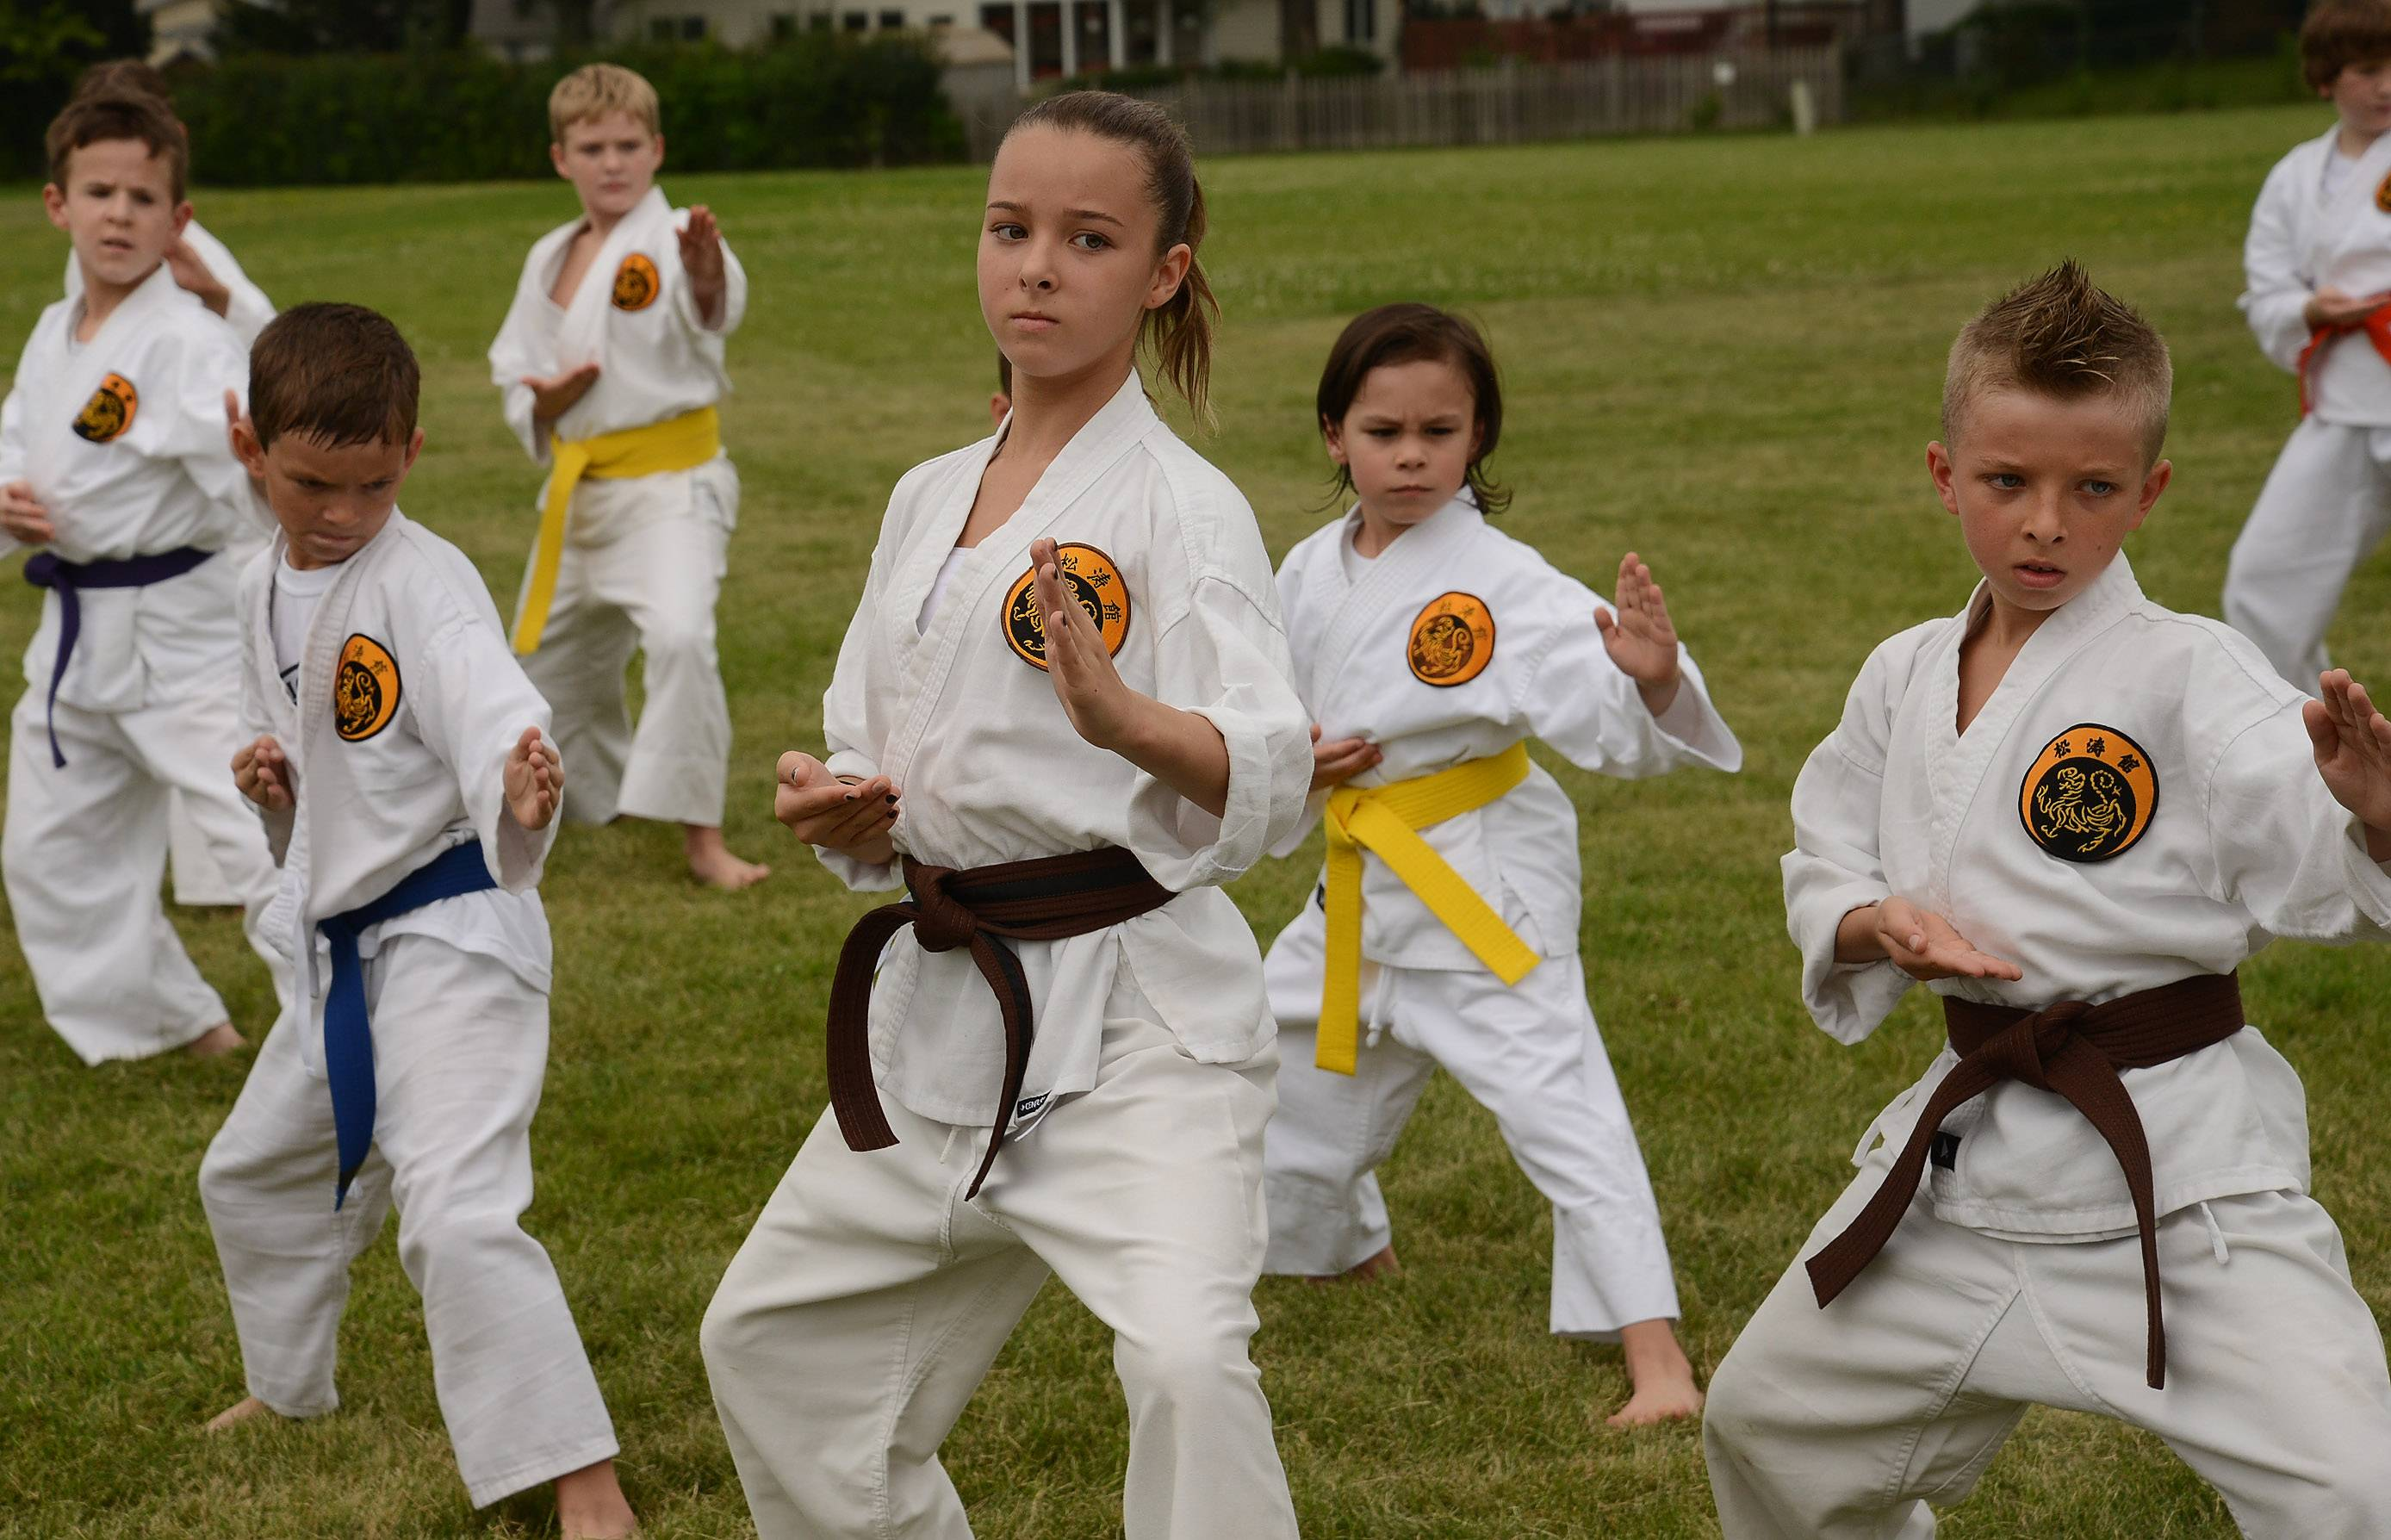 Taylor Henske, 13, center, and her brother Michael Henske, 10, right, put on a karate demonstration at the Elk Grove Township Elementary District 59 back-to-school celebration Saturday at Grove Junior High School in Elk Grove Village.